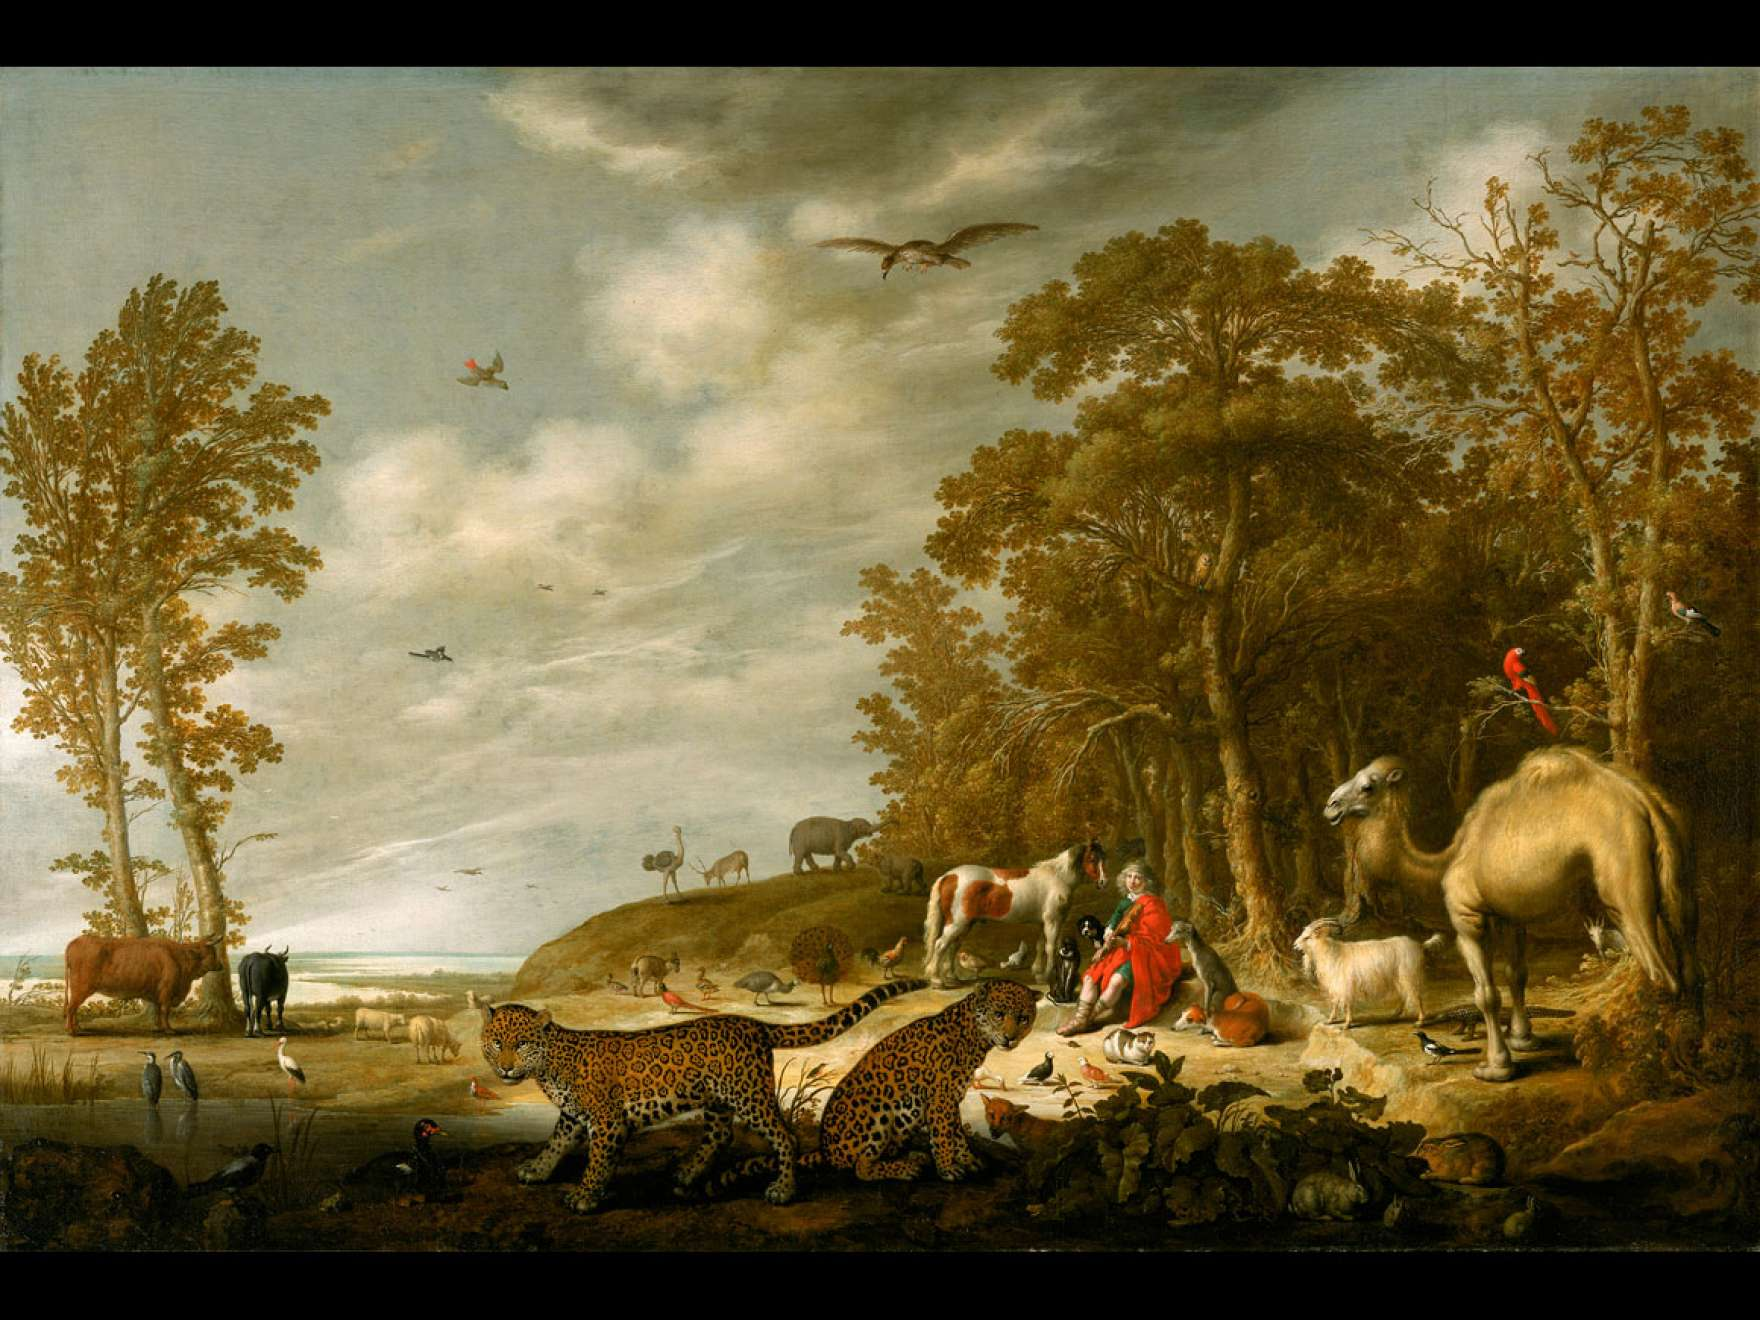 Aelbert Cuyp's painting, Orpheus Charming the Animals